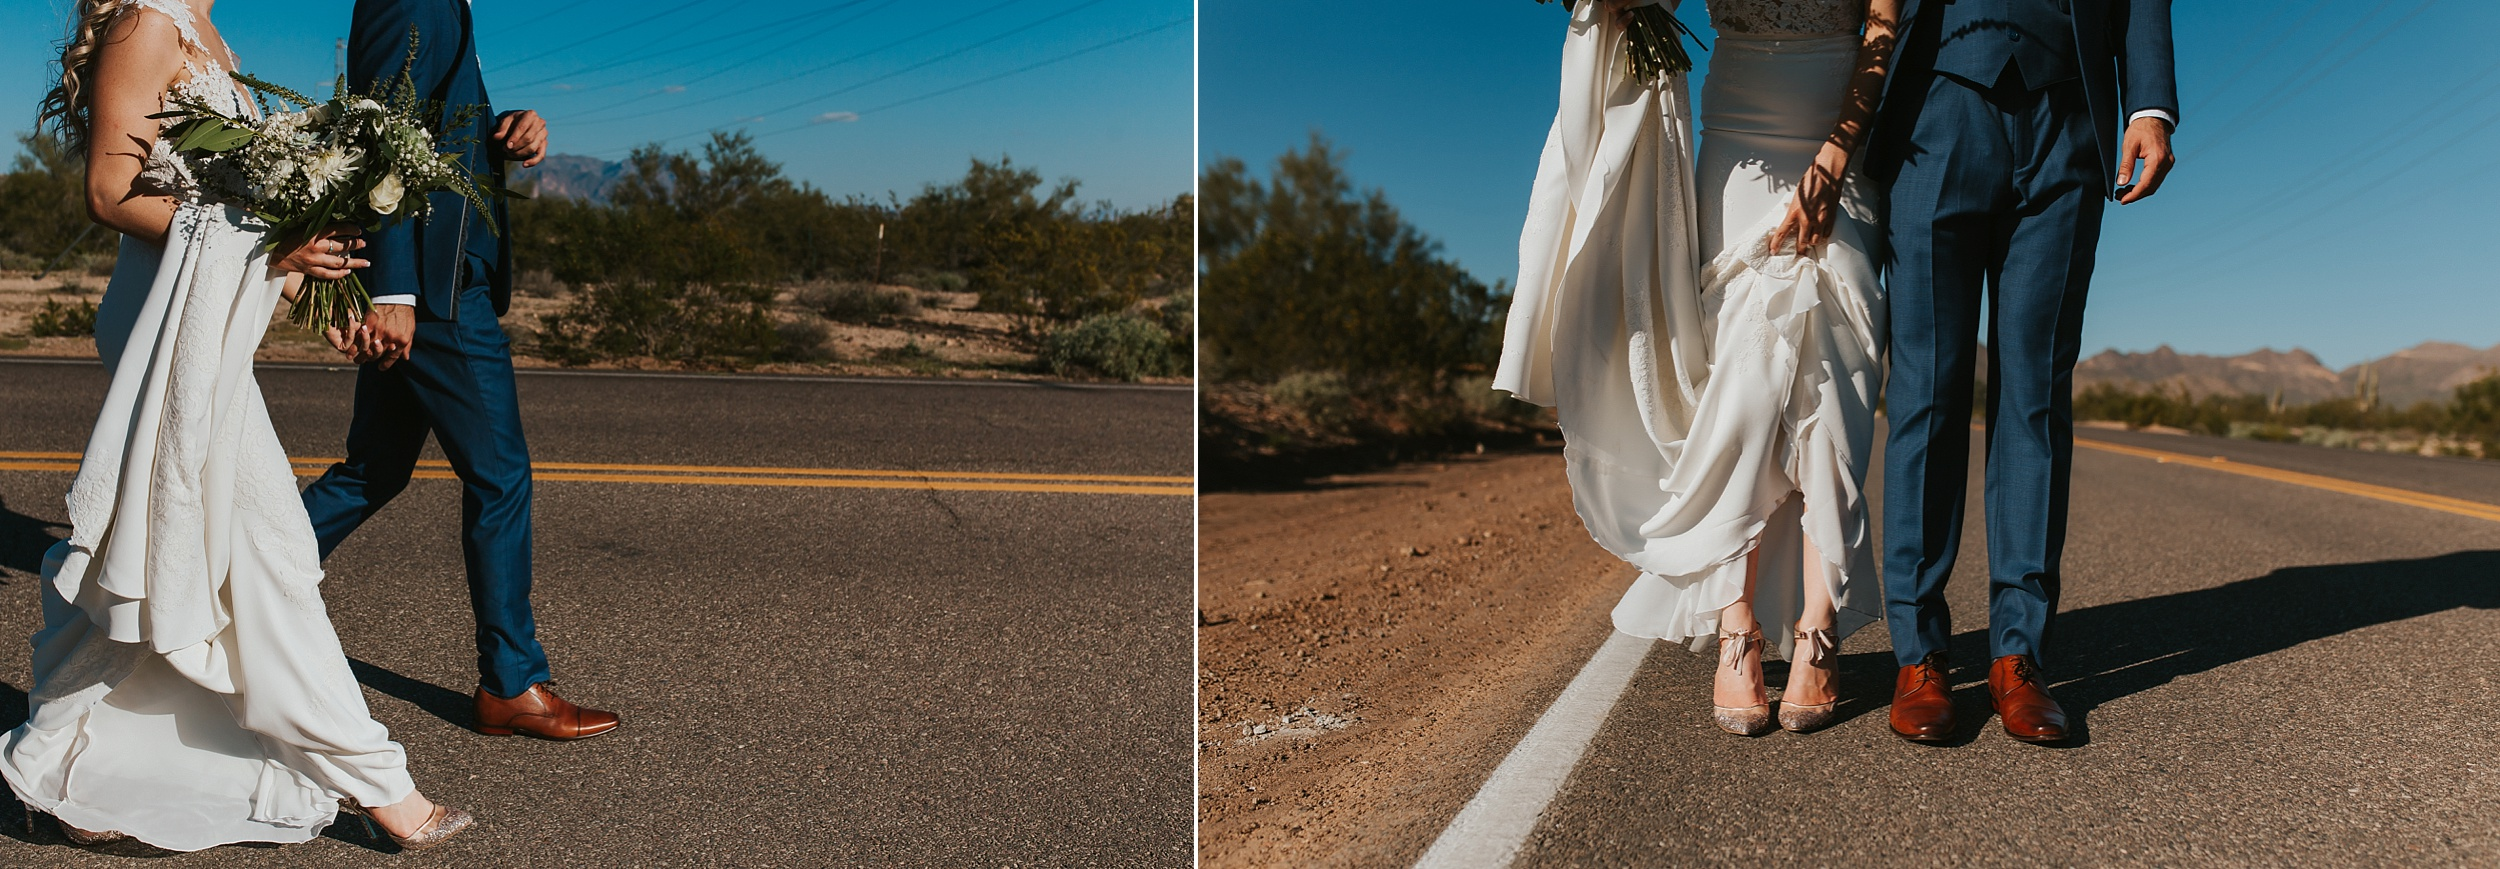 Meg+Bubba_Wedding_Bride+Groom_Portraits_Arizona-58.jpg